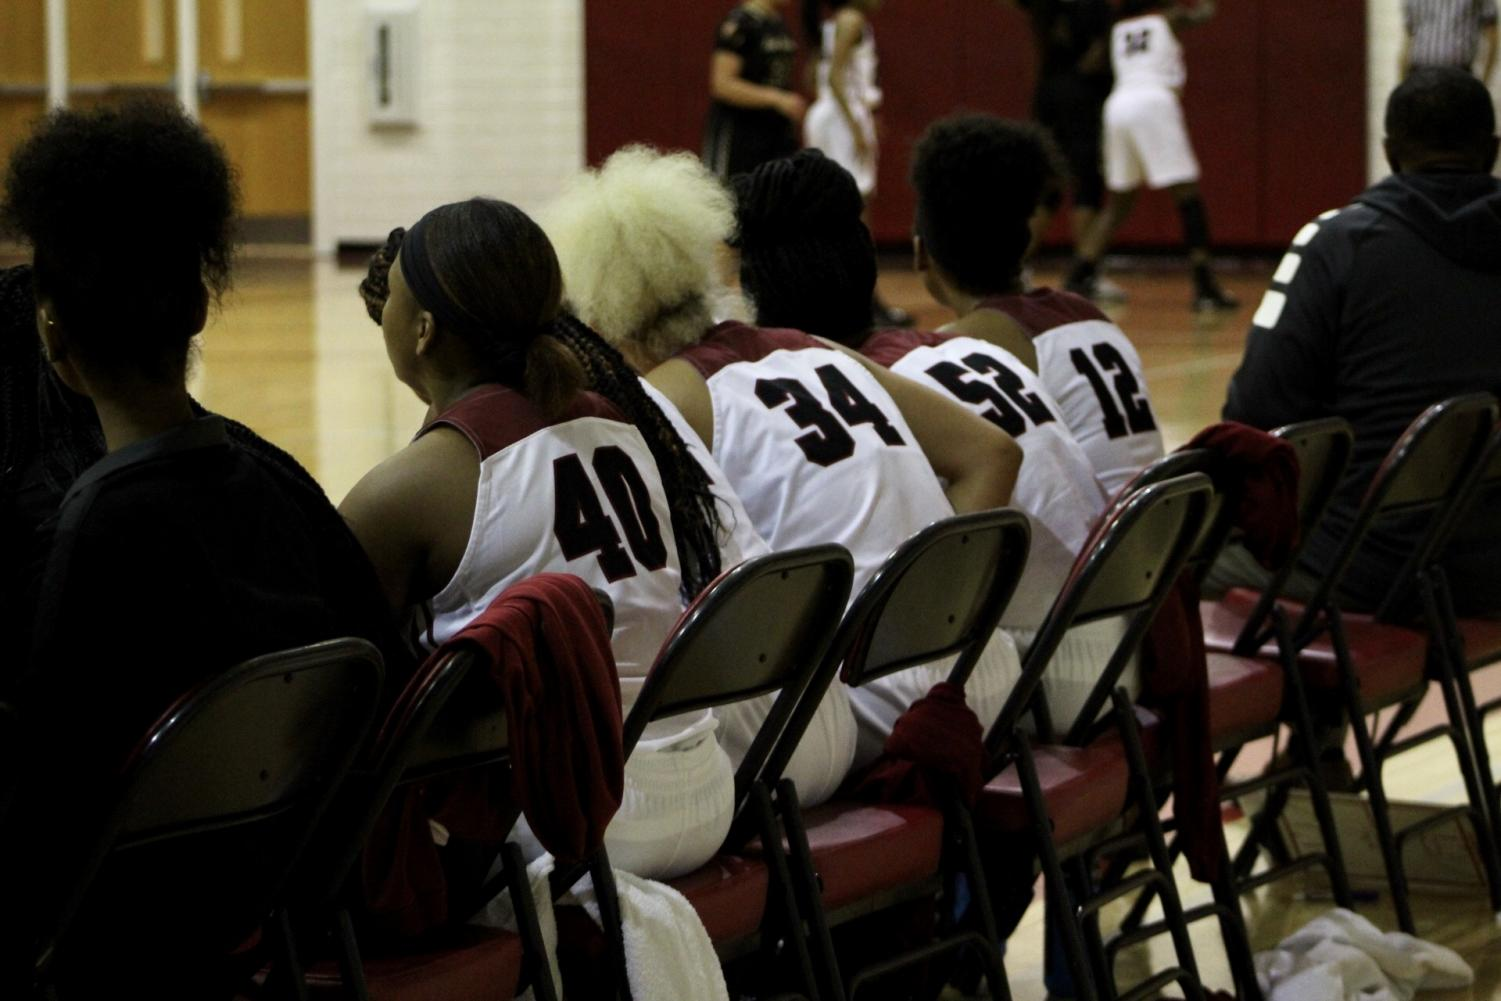 Ladybacks+support+their+teammates+from+the+sidelines.